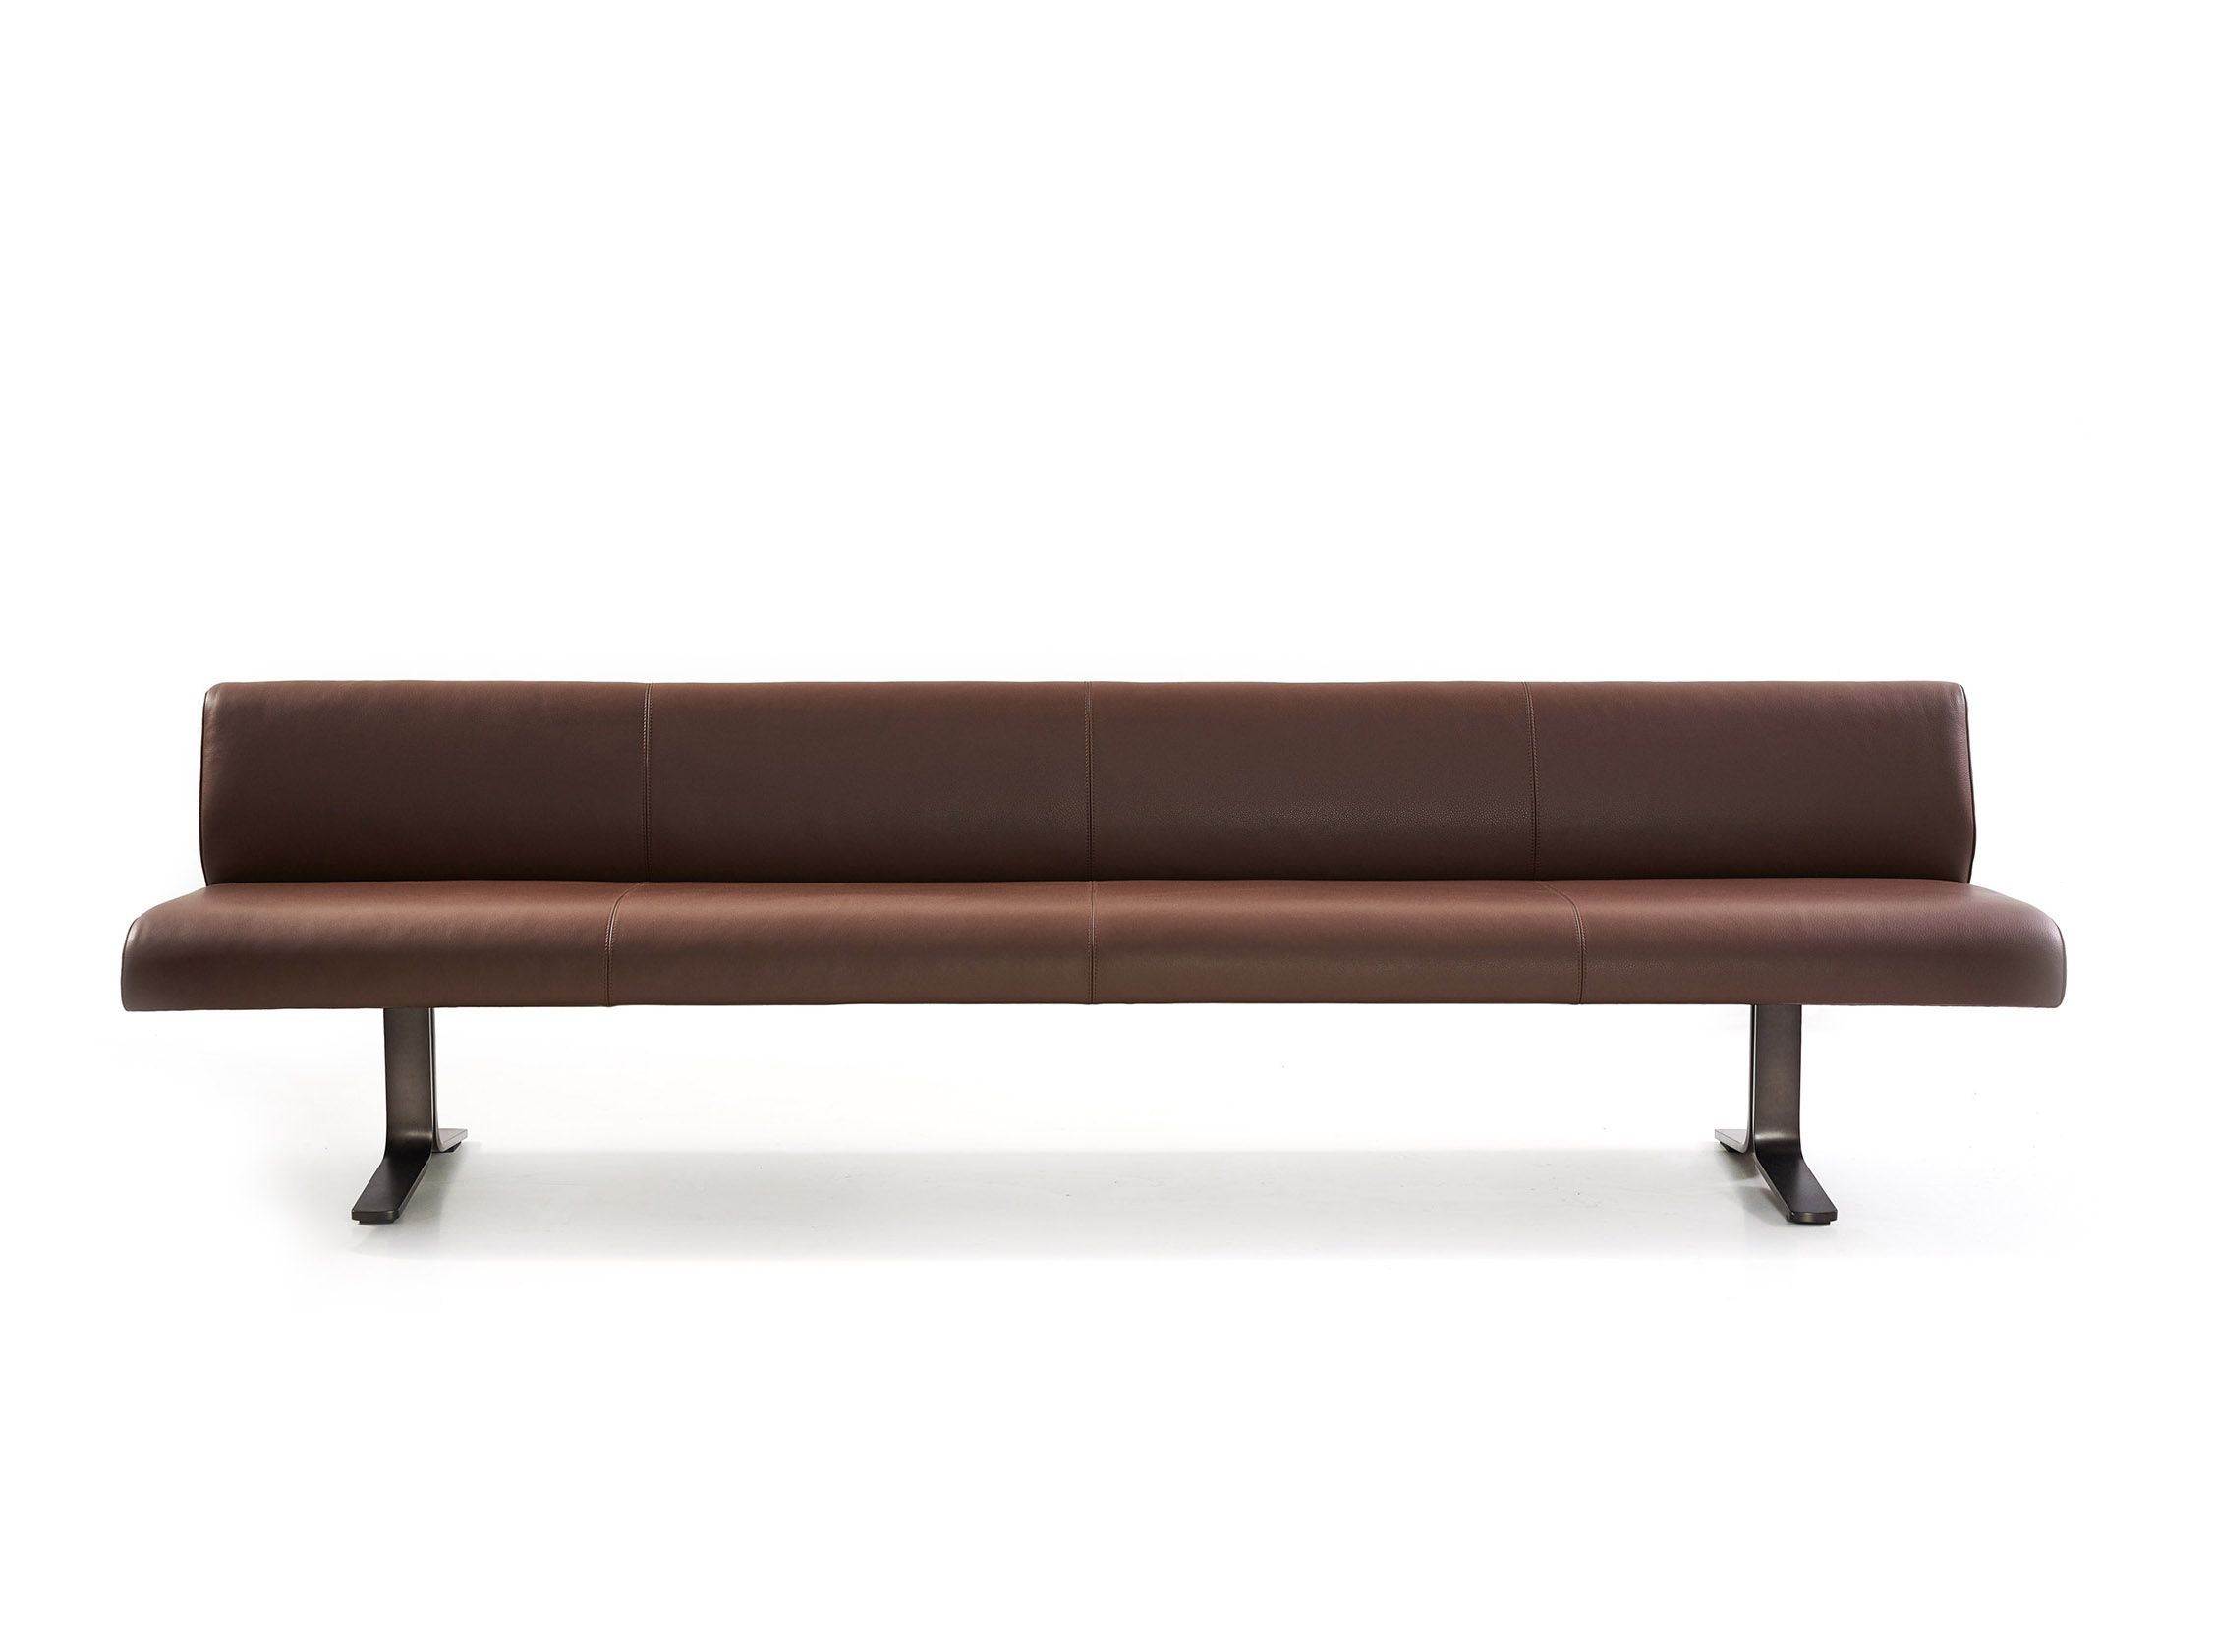 Uberlegen MOUNT Bench. Presented With An Ecological Leather And A Steel Frame Made Of  Anthracite Lacquered